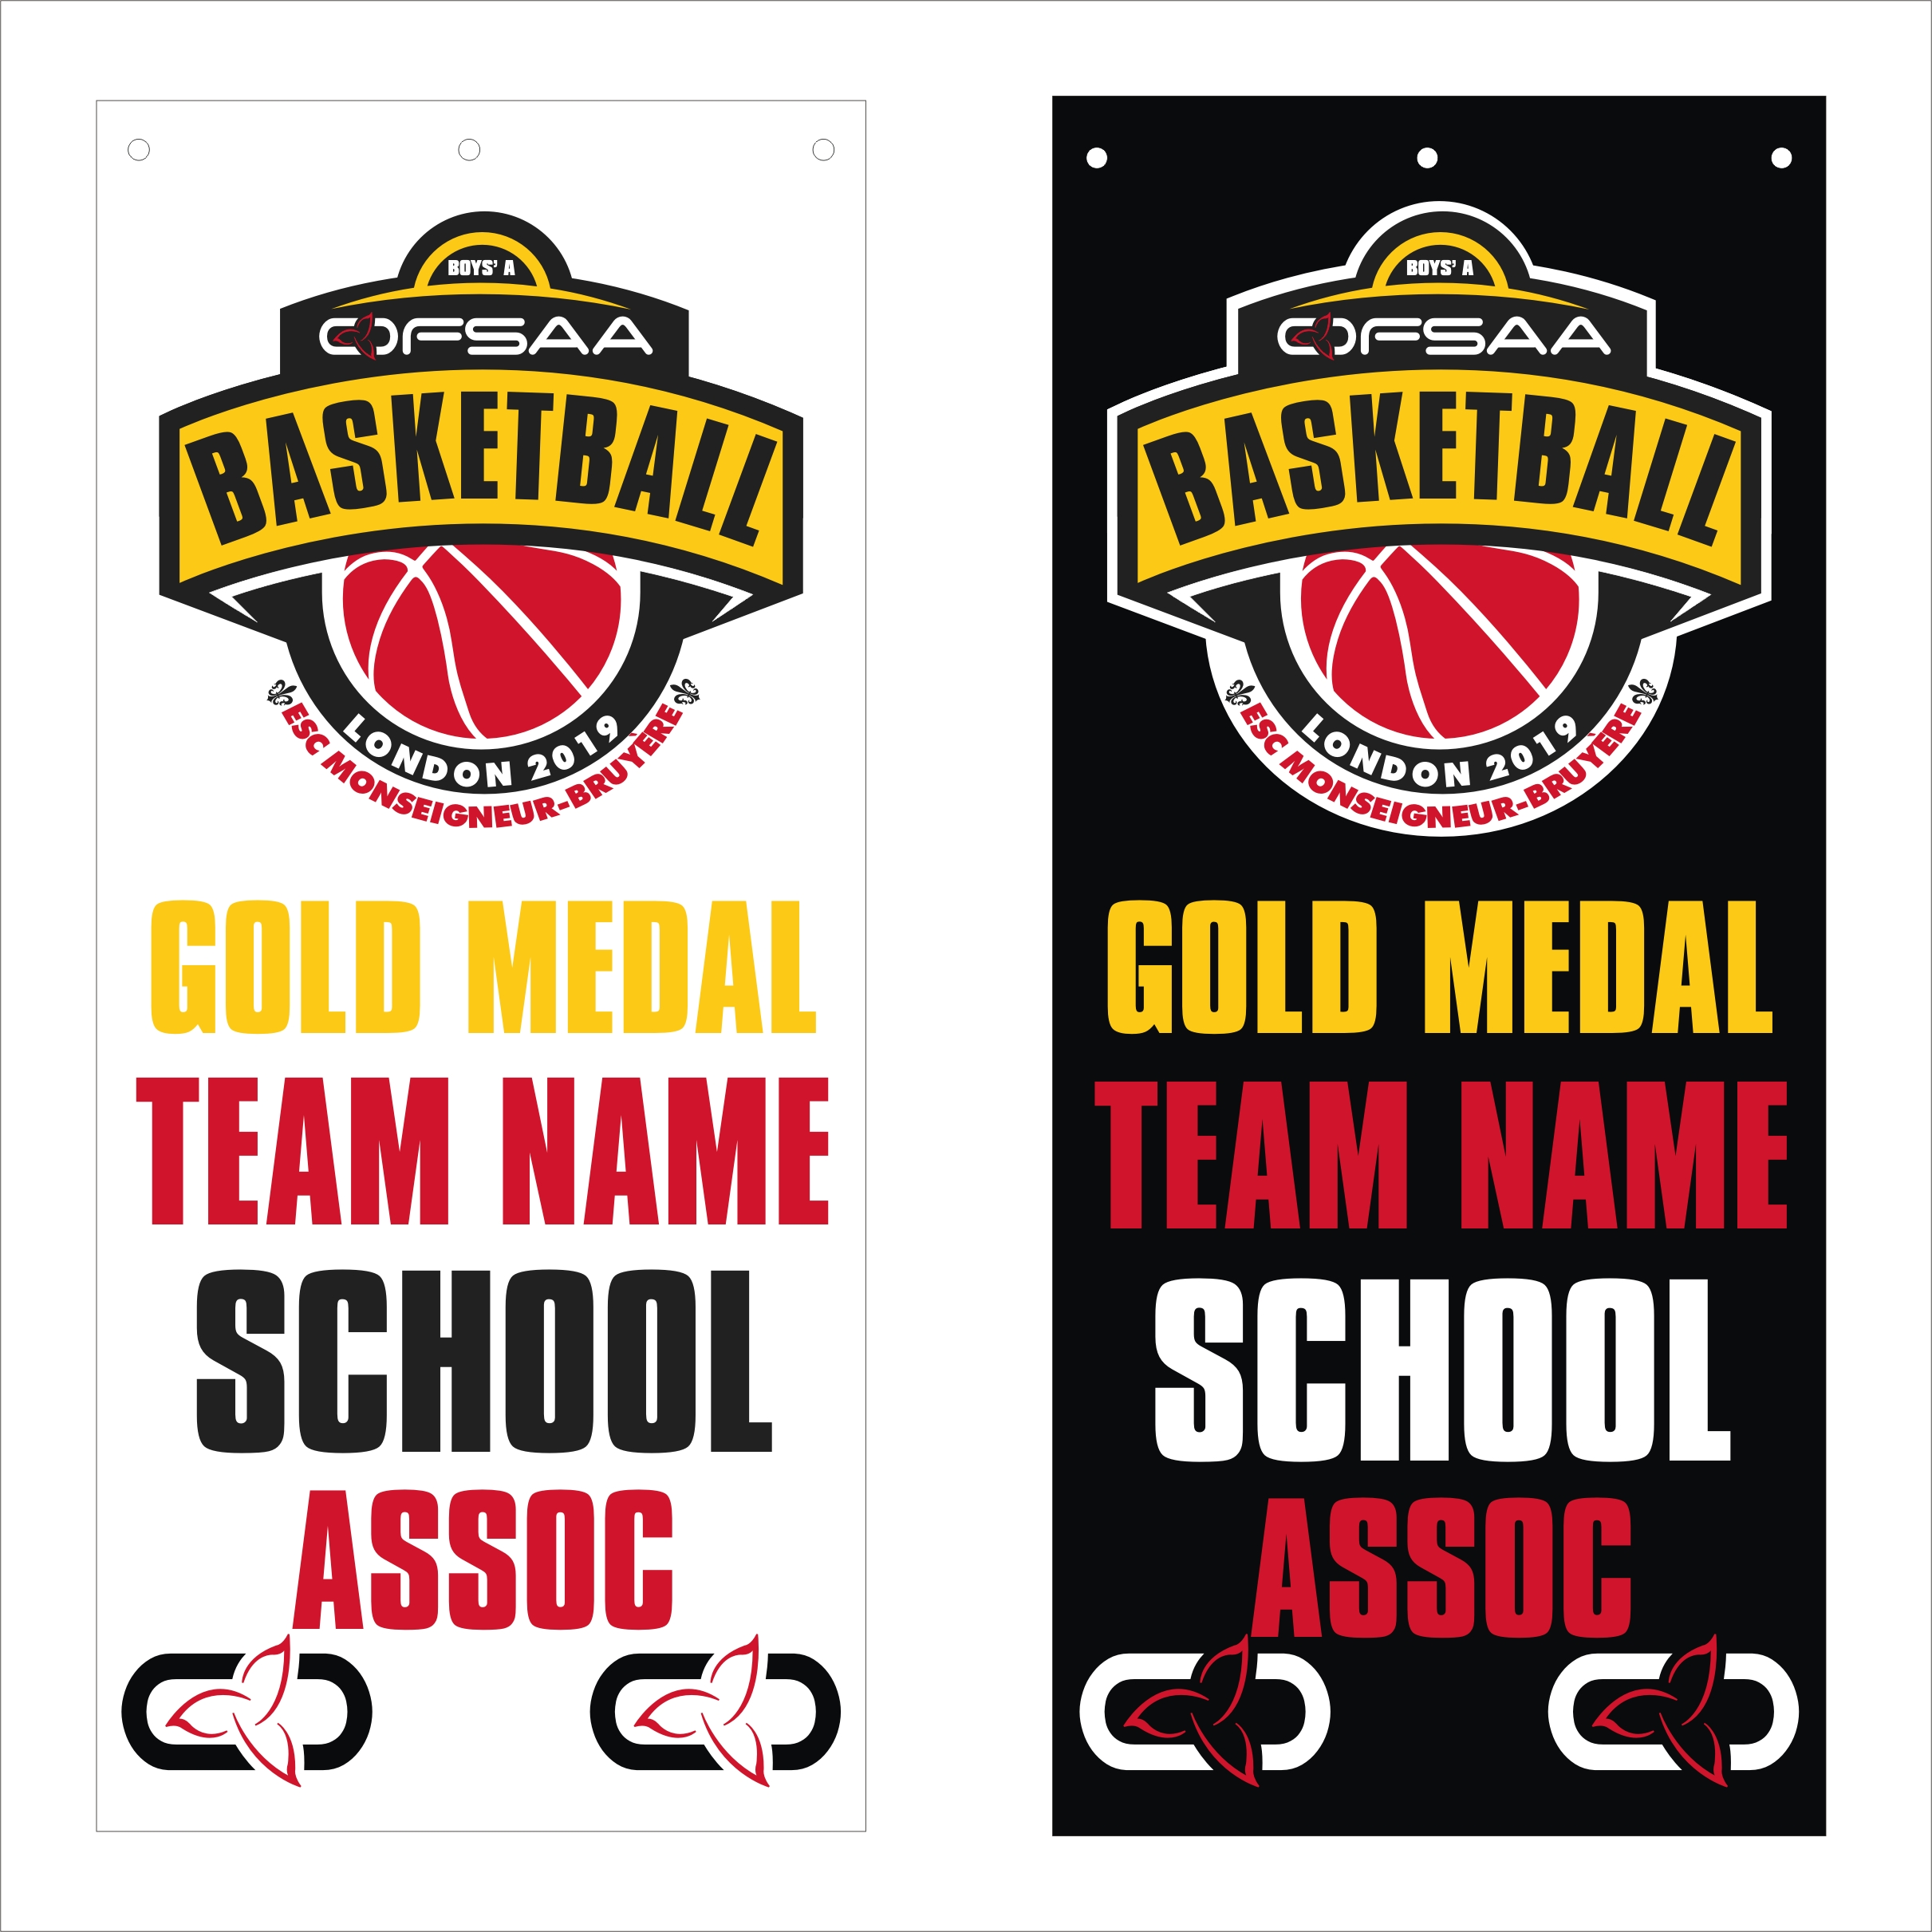 2019 Boys A Basketball banner small.jpg